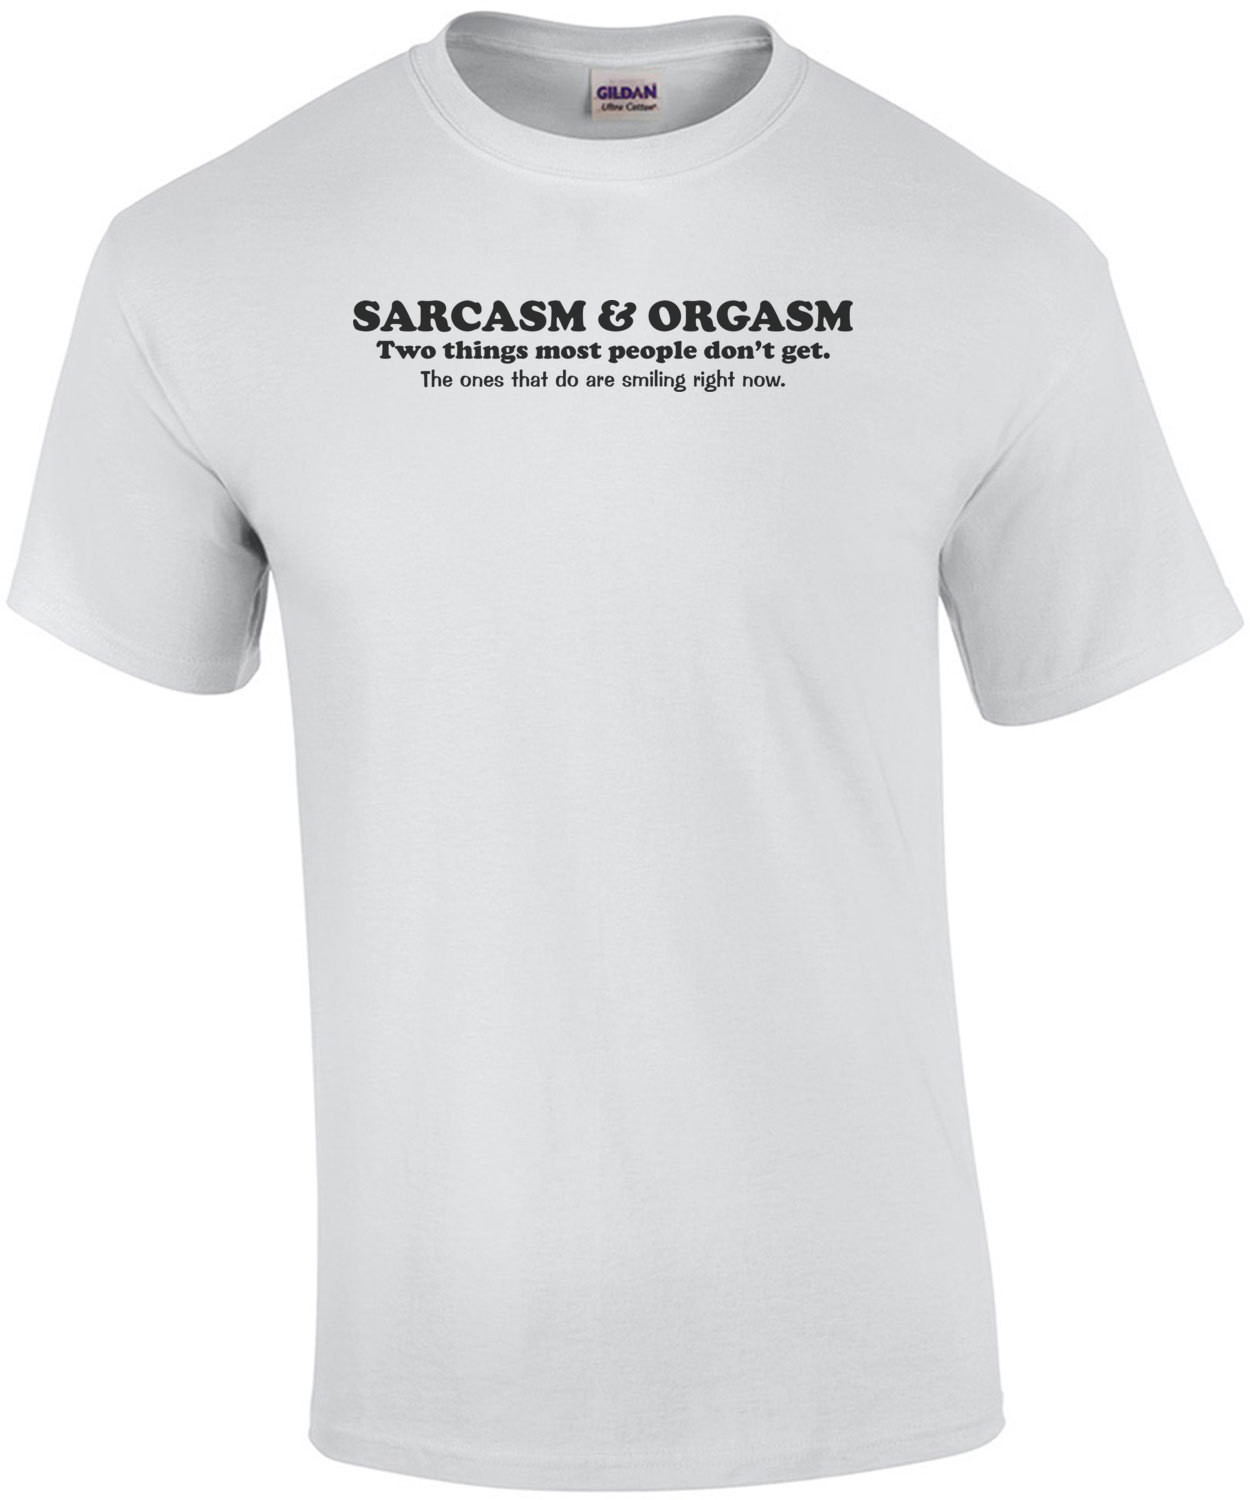 Sarcasm And Orgasm Two Things Most People Don't Get The Ones That Do Are Smiling Funny Shirt